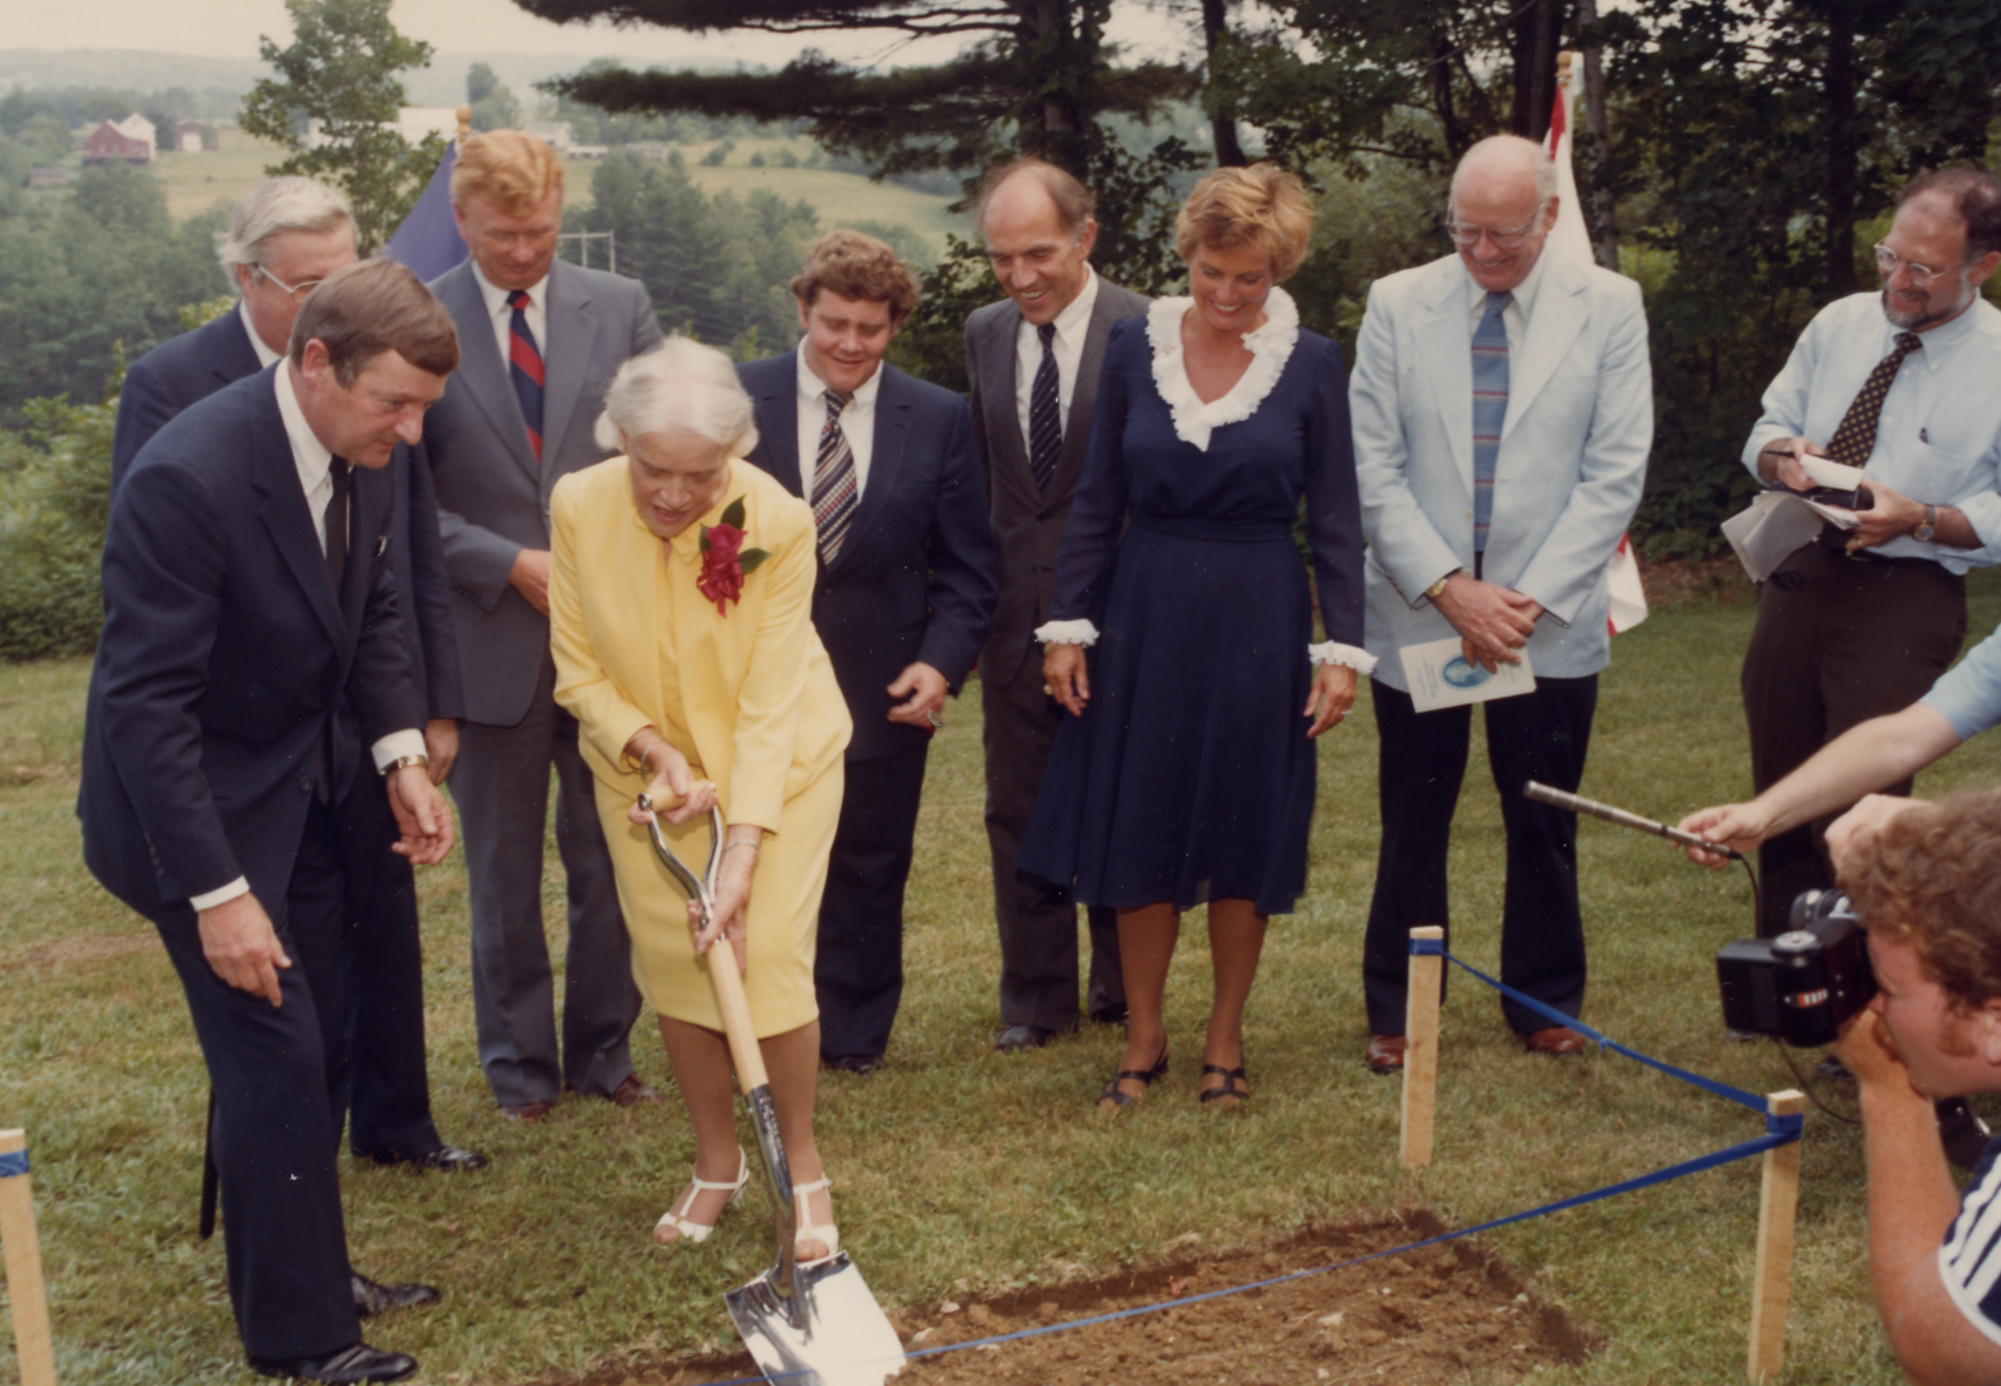 1982: Dedicates the Margaret Chase Smith Library.